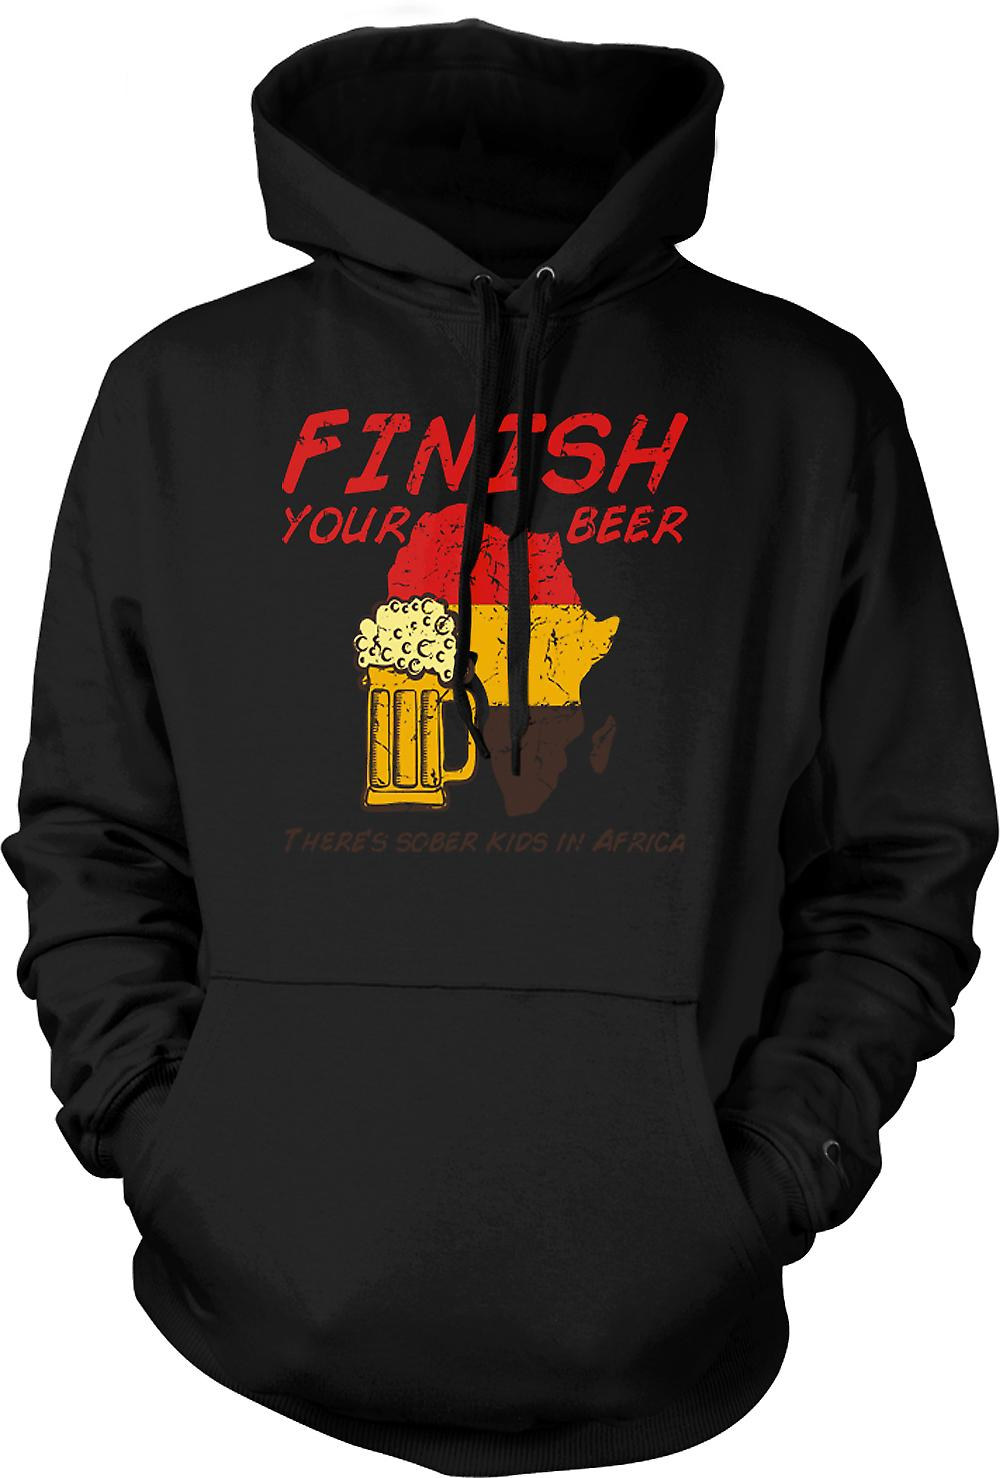 Mens Hoodie - Finish Your Beer Theres Sober Kids In Africa - Funny